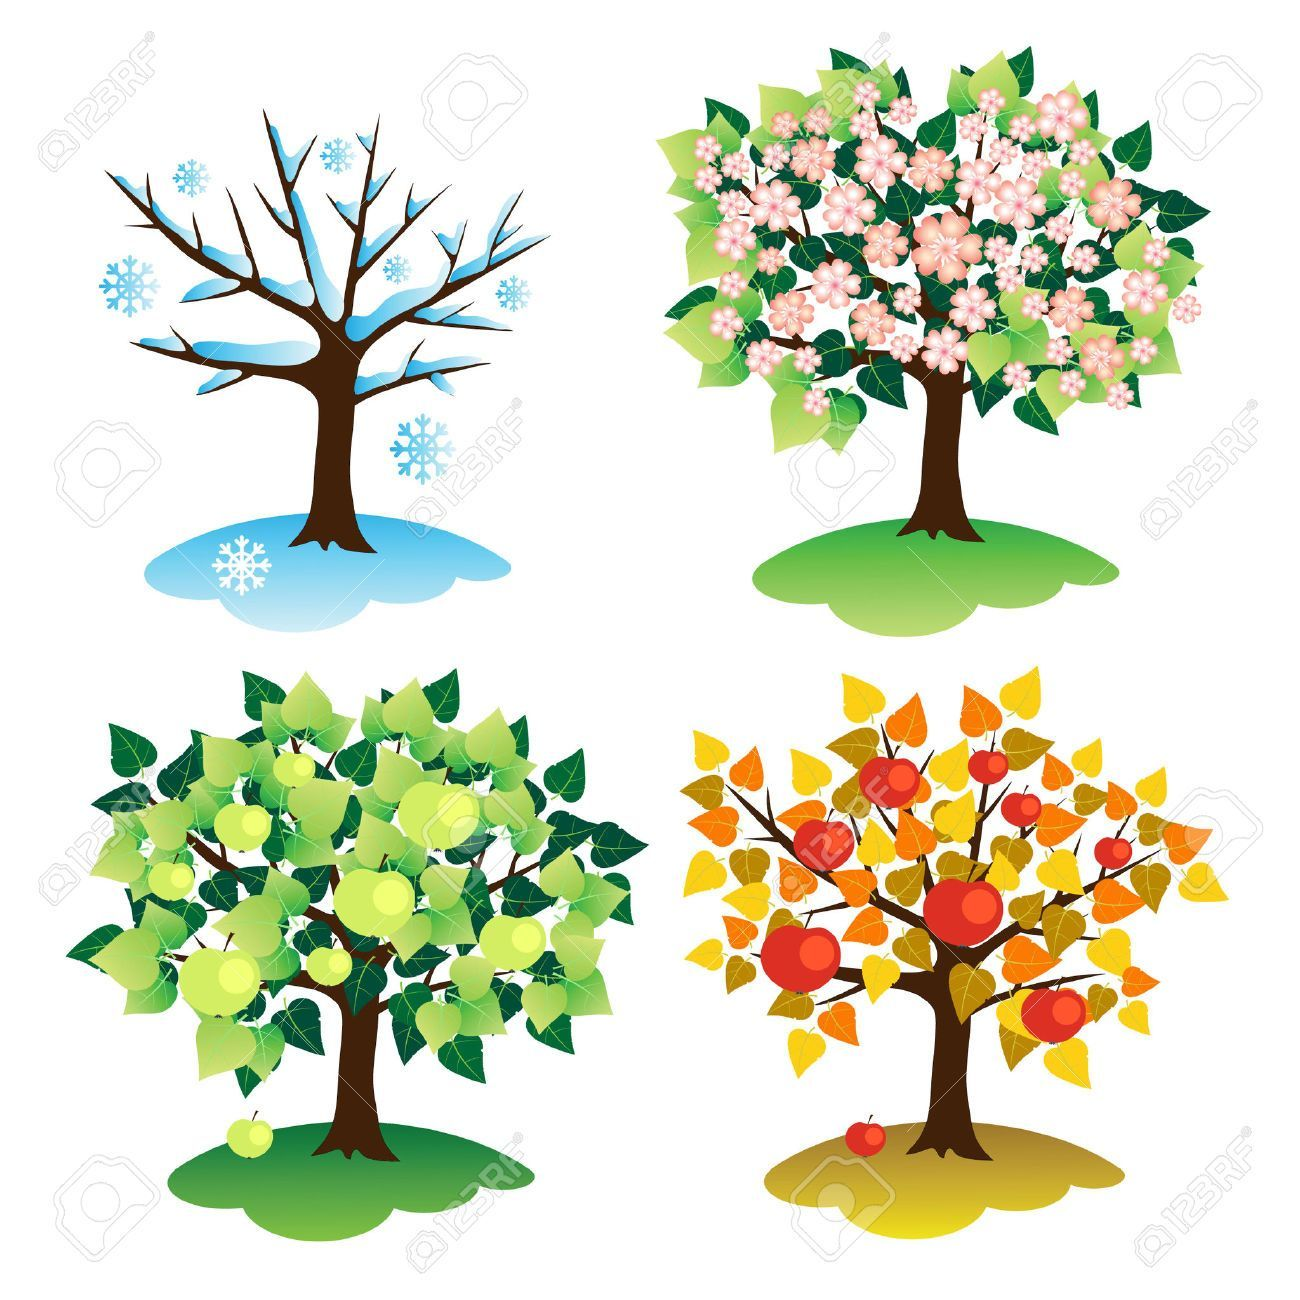 4 seasons images clipart picture royalty free stock 4 seasons clipart 8 » Clipart Portal picture royalty free stock